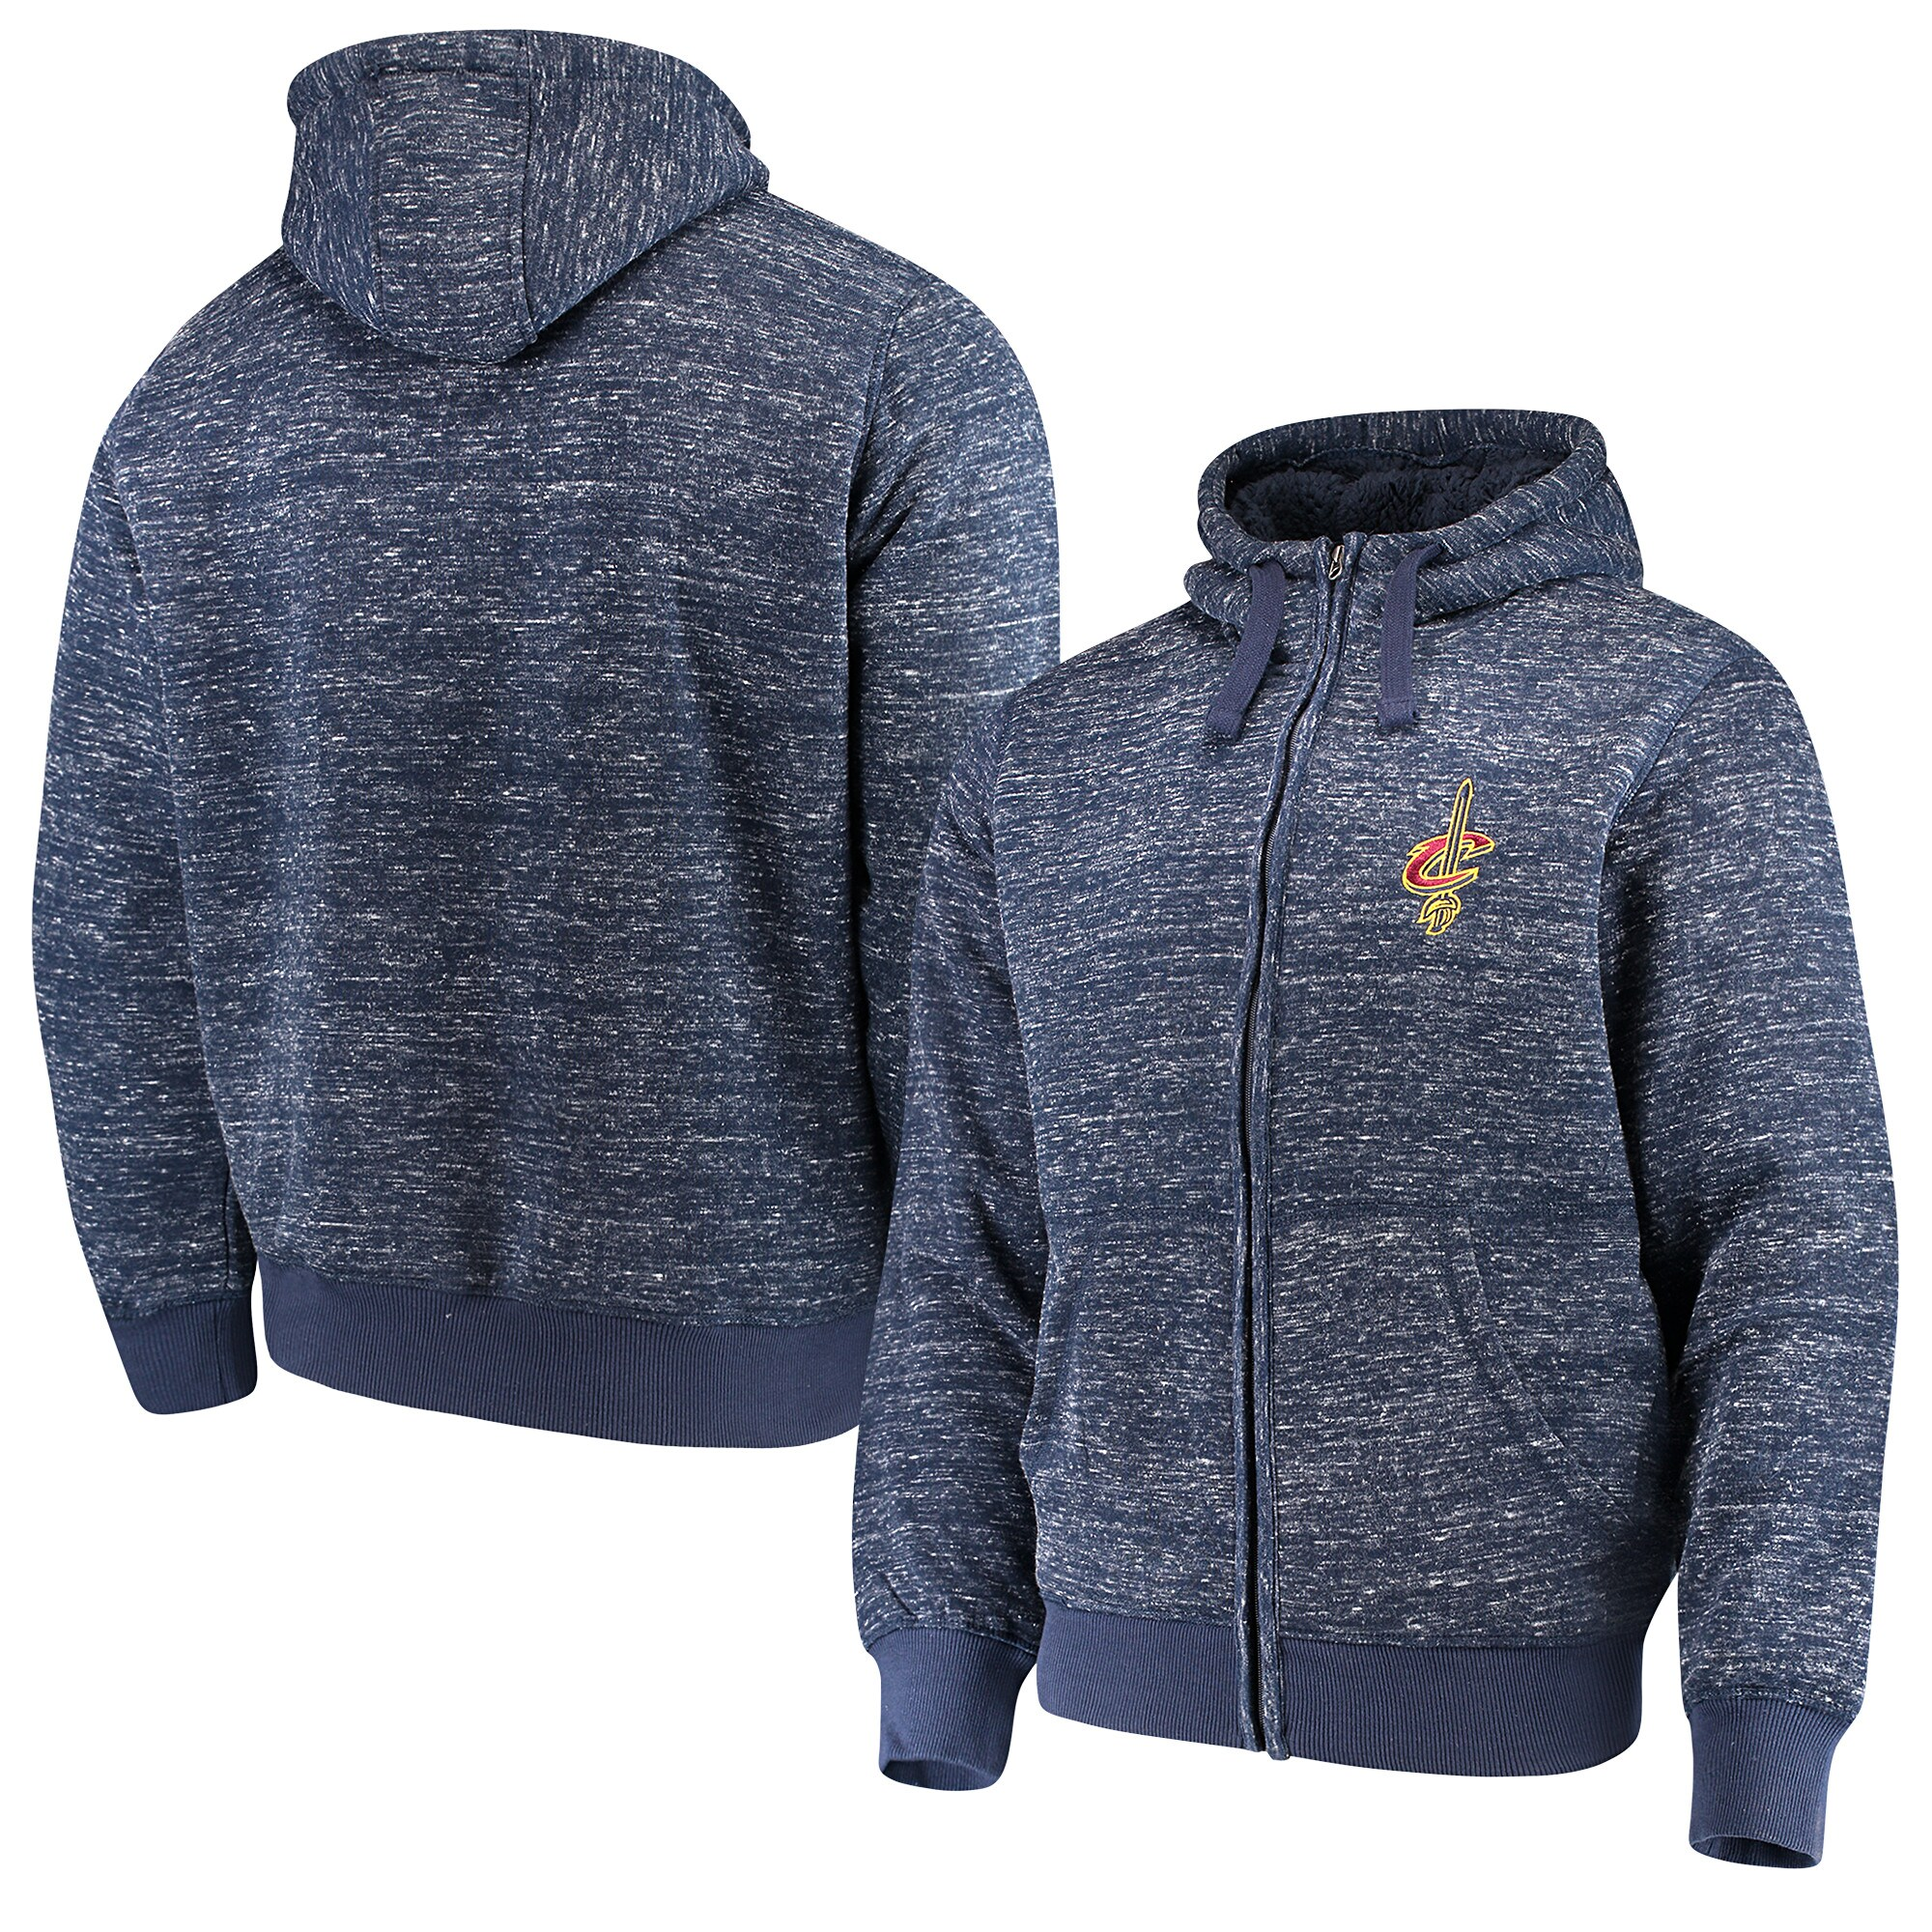 Cleveland Cavaliers G-III Sports by Carl Banks Discovery Transitional Full-Zip Jacket - Black